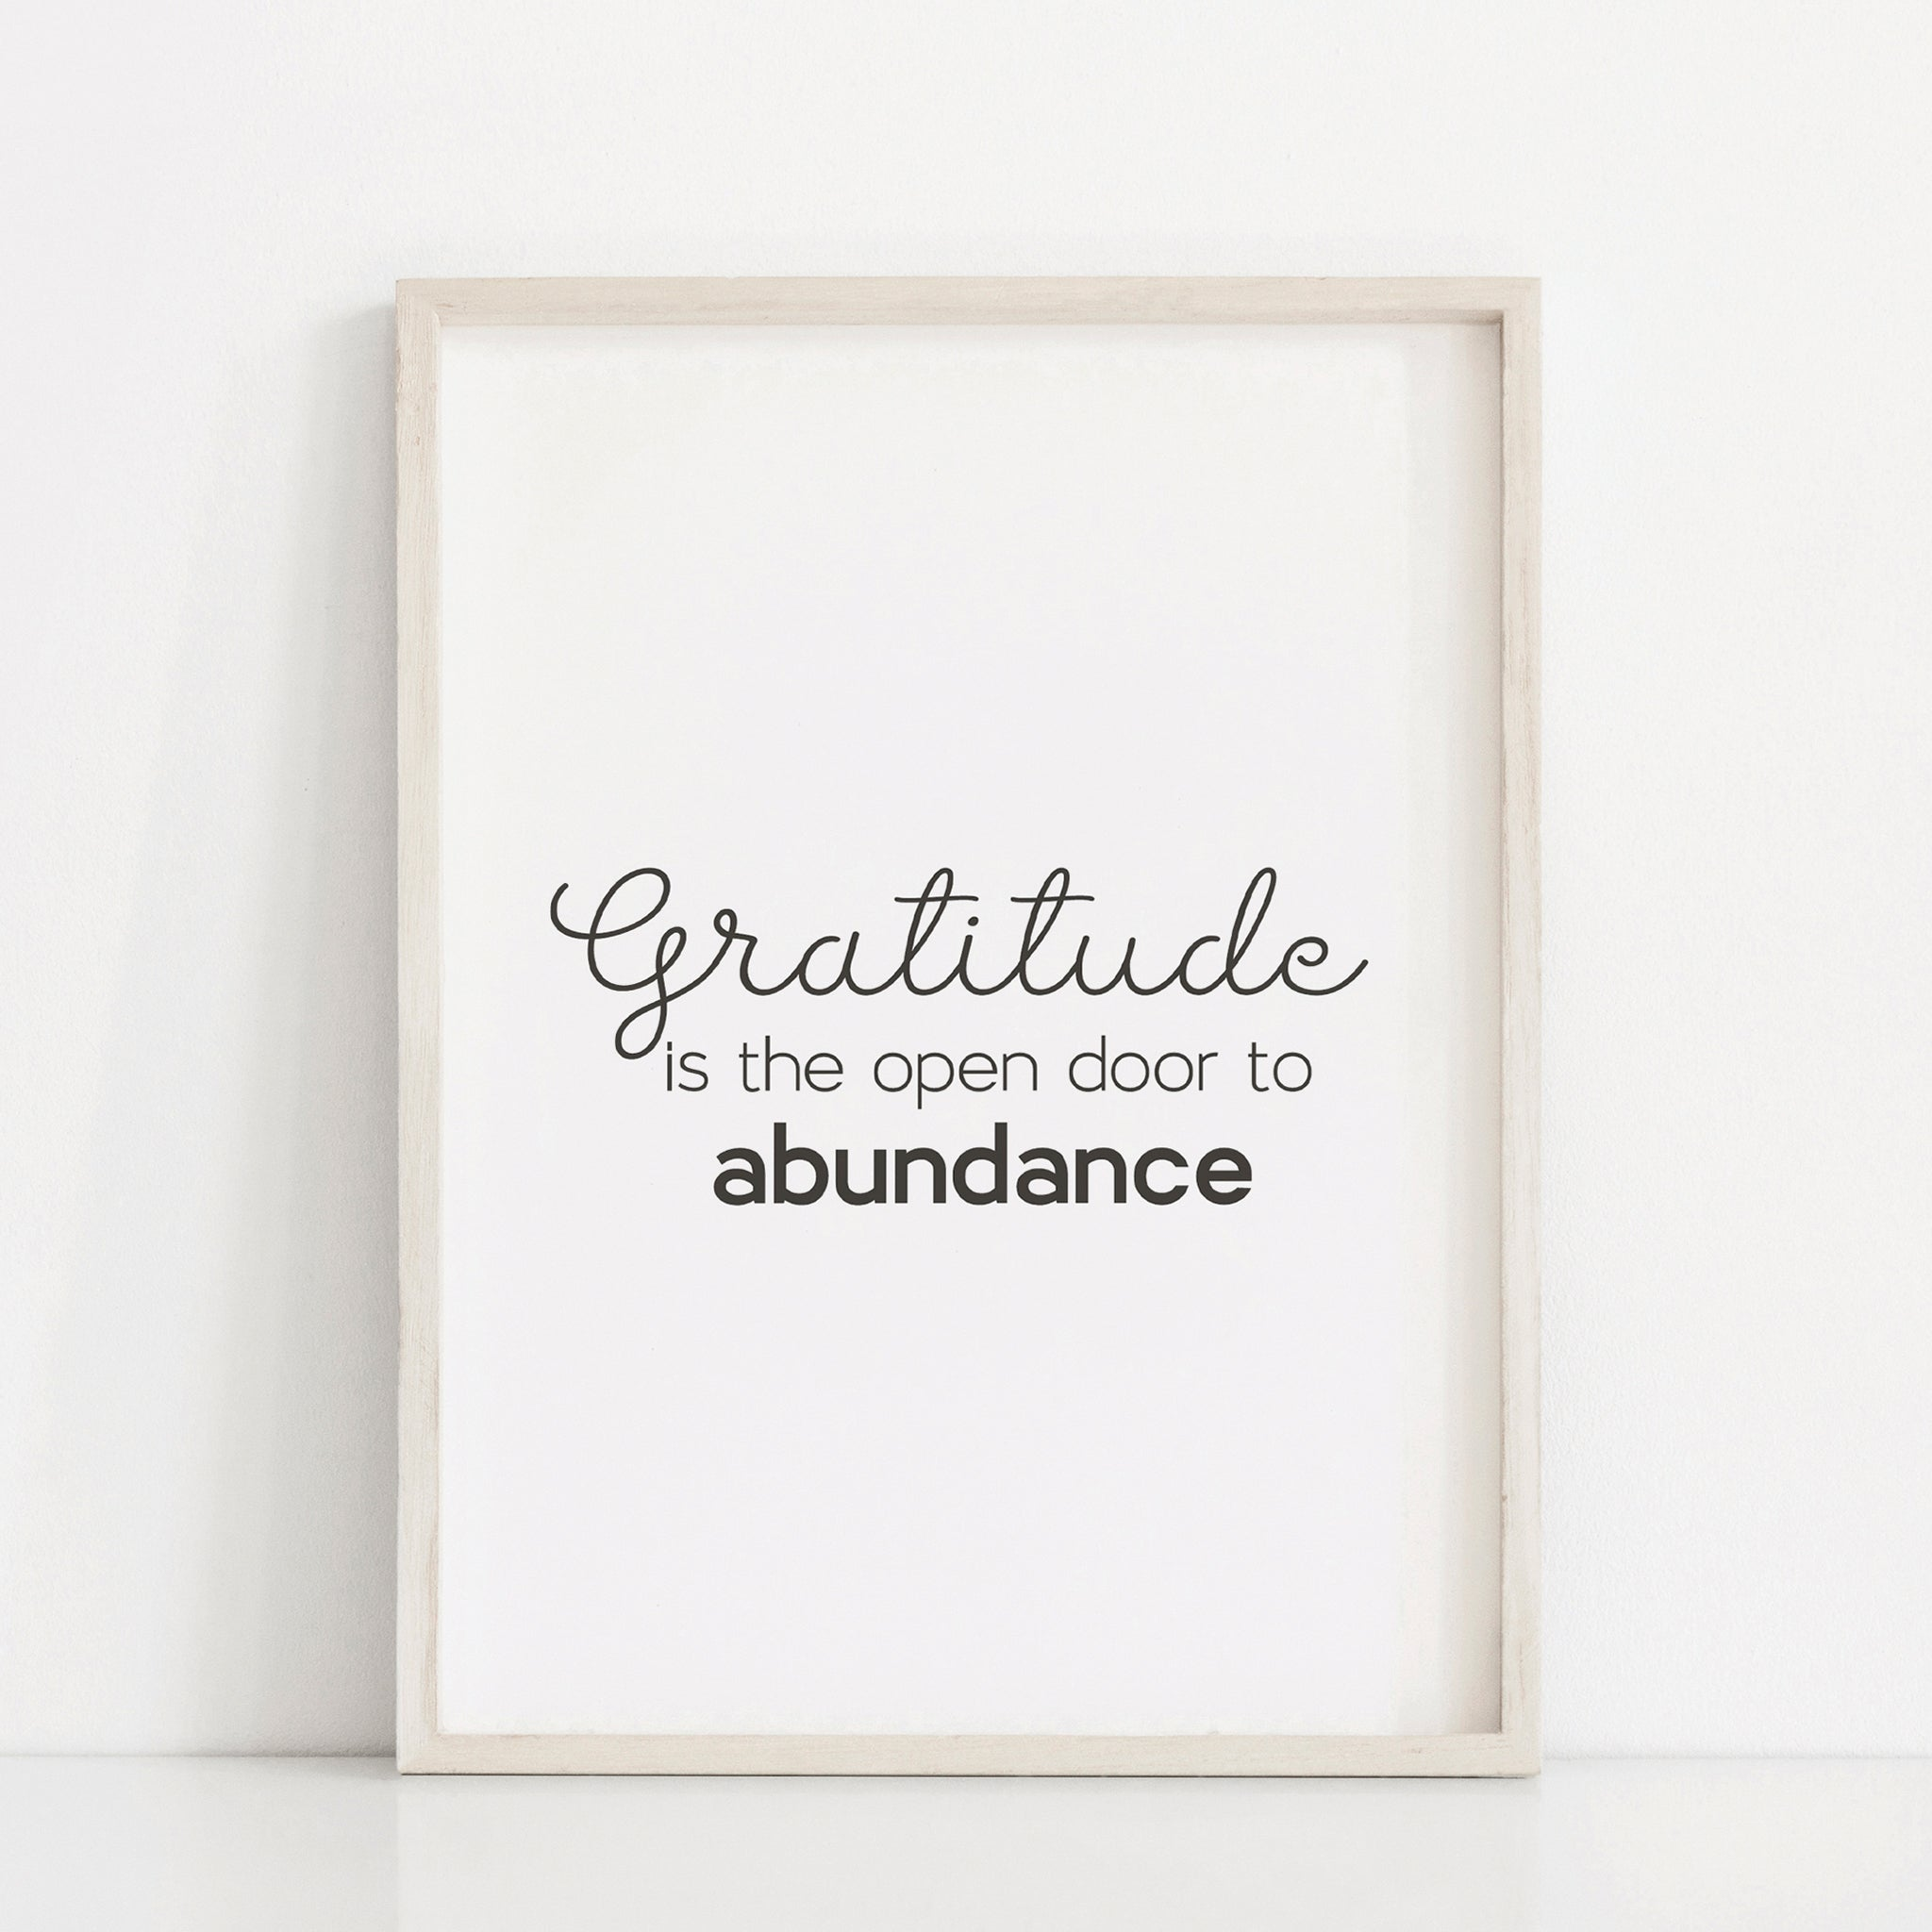 Gratitude is the open door to abundance quote wall art, Motivational quote poster